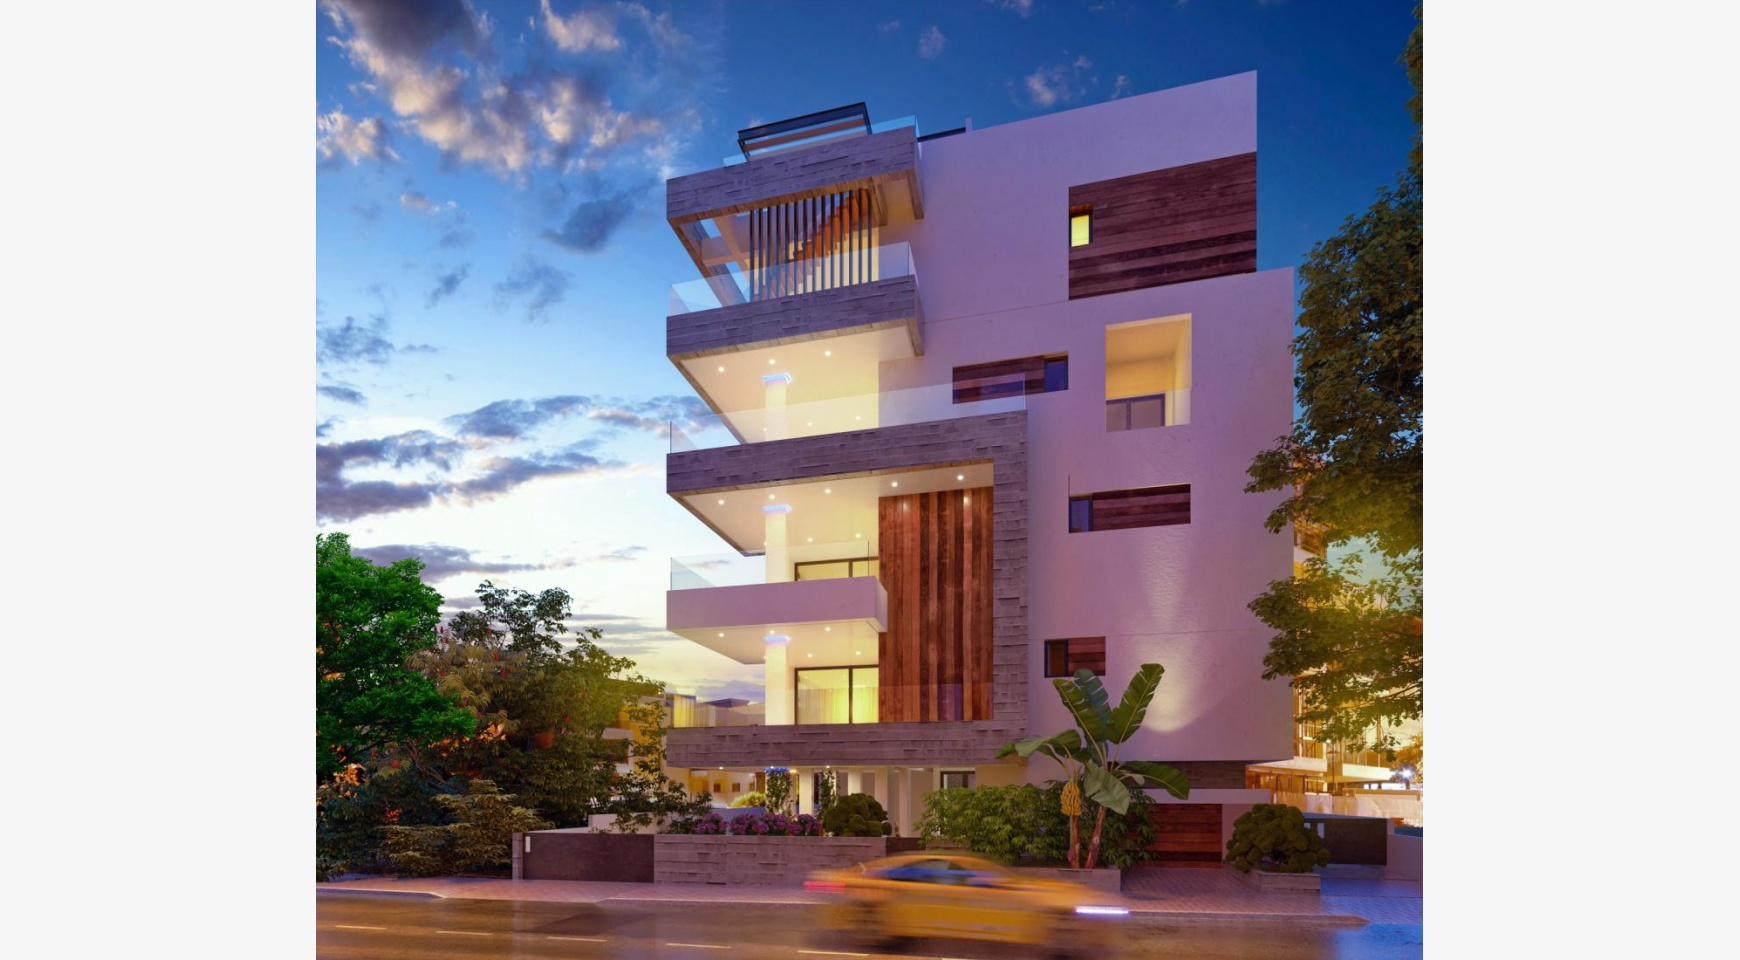 New 3 Bedroom Apartment in a Modern Building near the Sea - 2